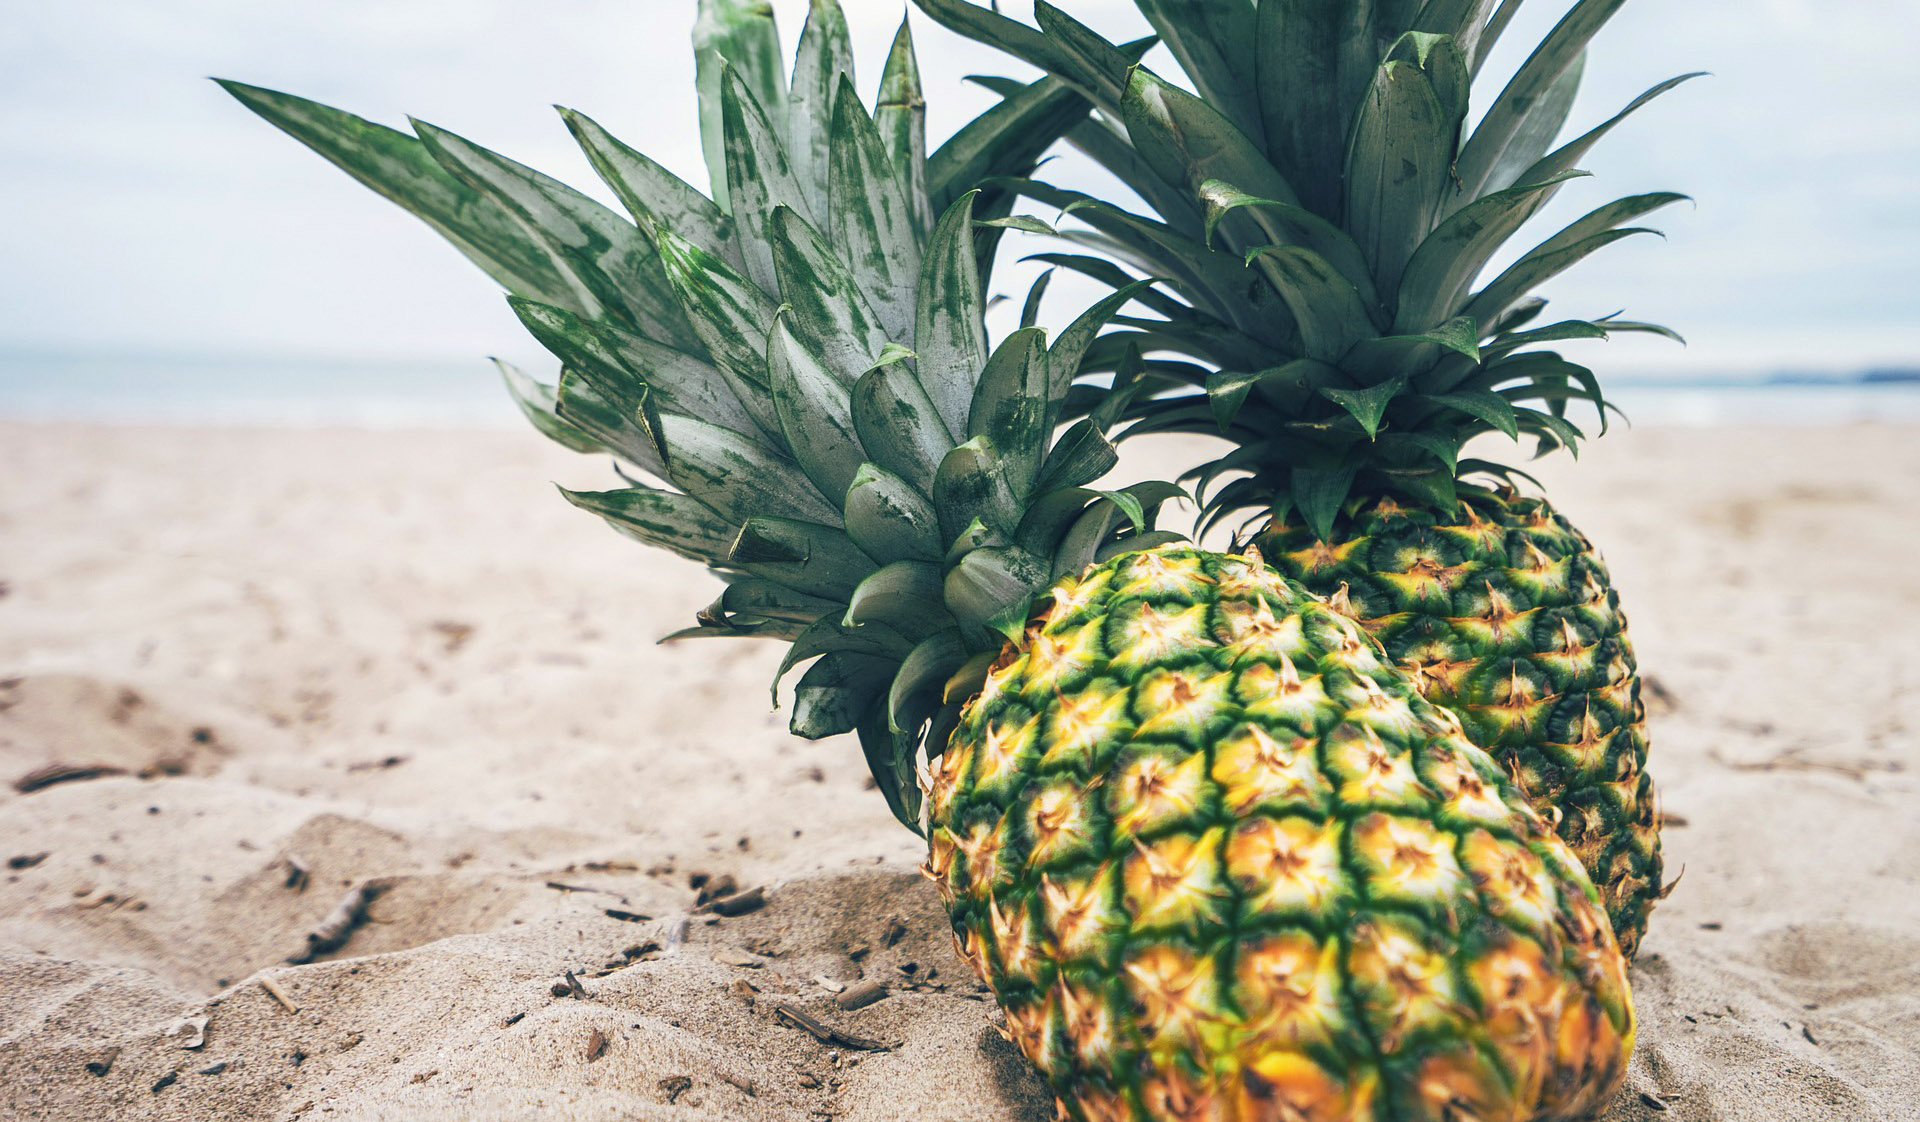 You've been eating pineapple wrong your entire life